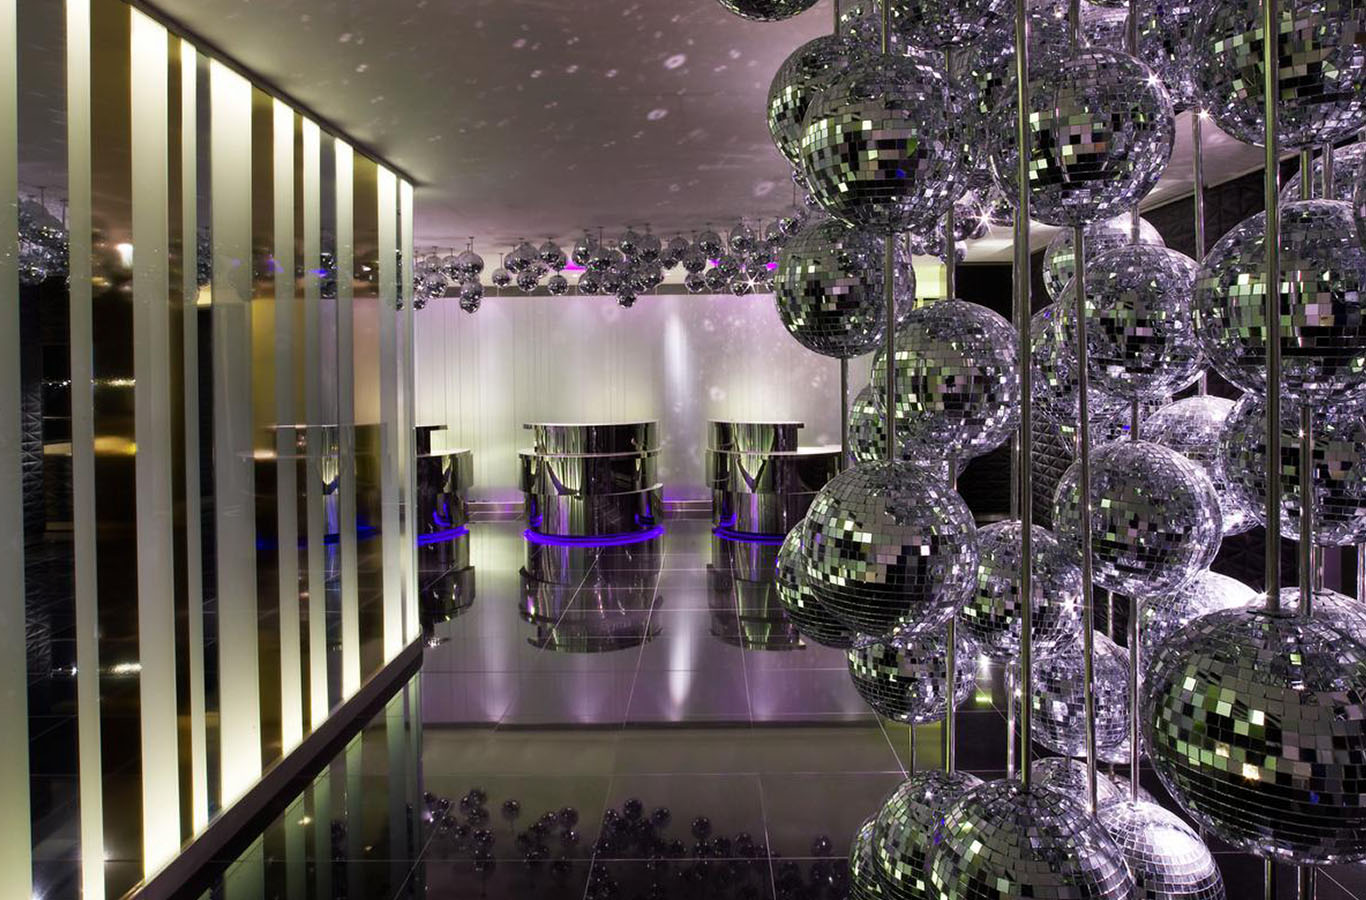 The W Hotel Lift Lobby Polished Granite Tiles By Marble And Granite Ltd 2